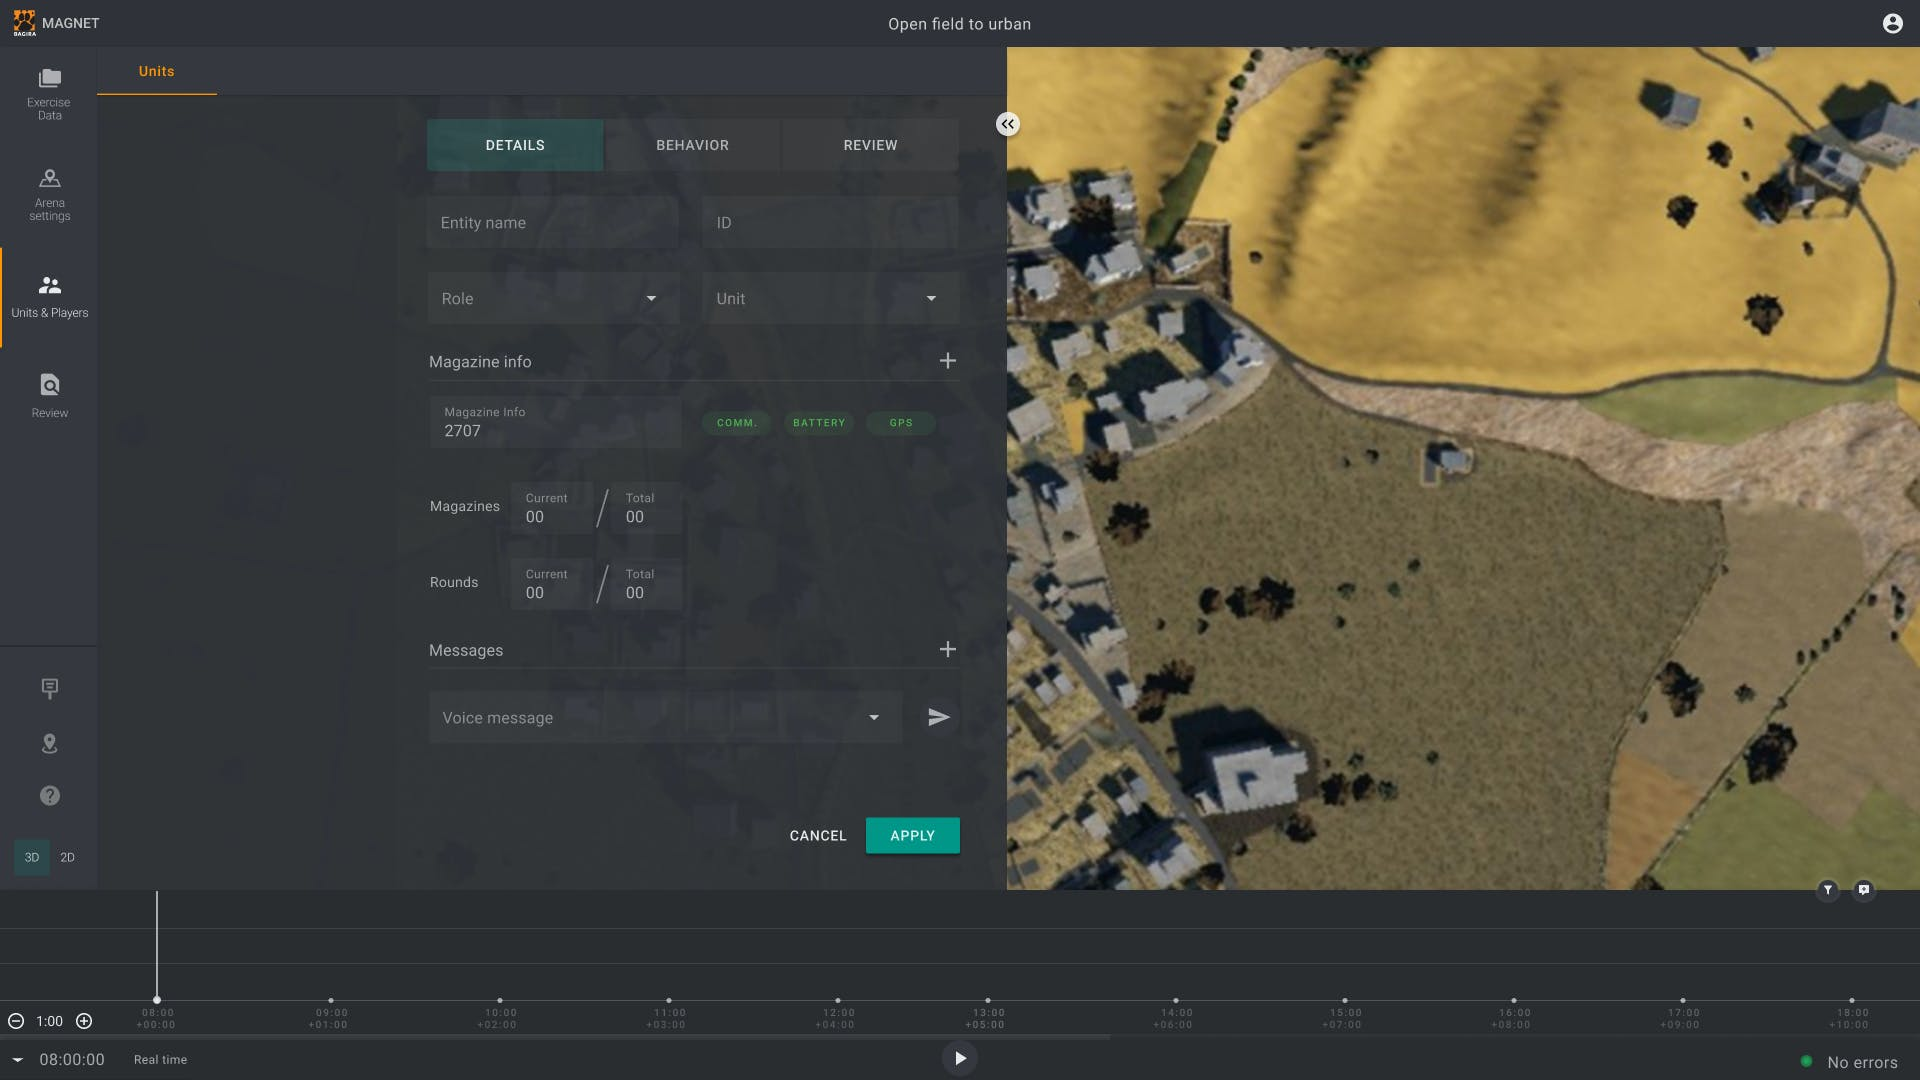 <p>The MAGNET control app monitors the trainees' location and status, and generates an extensive state-of-art technology that enables the unit to combine live and virtual training.</p>